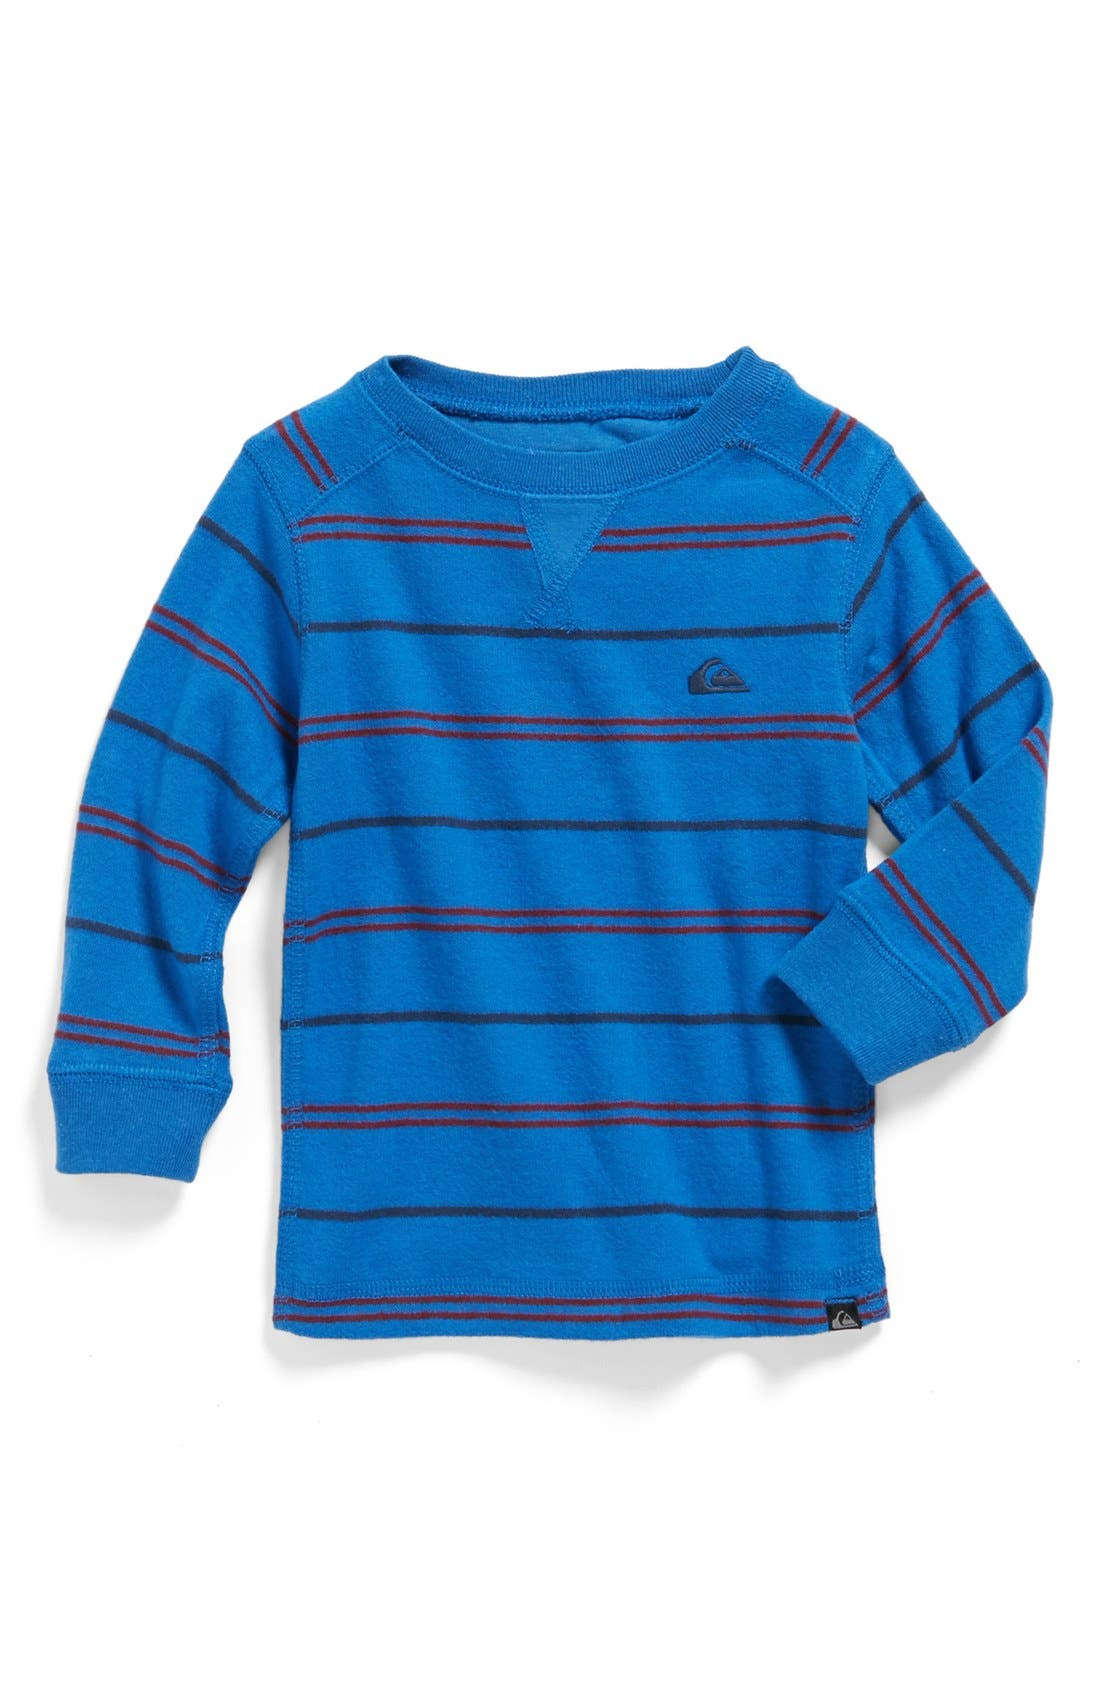 Main Image - Quiksilver 'Snit' Stripe Sweater (Baby Boys)